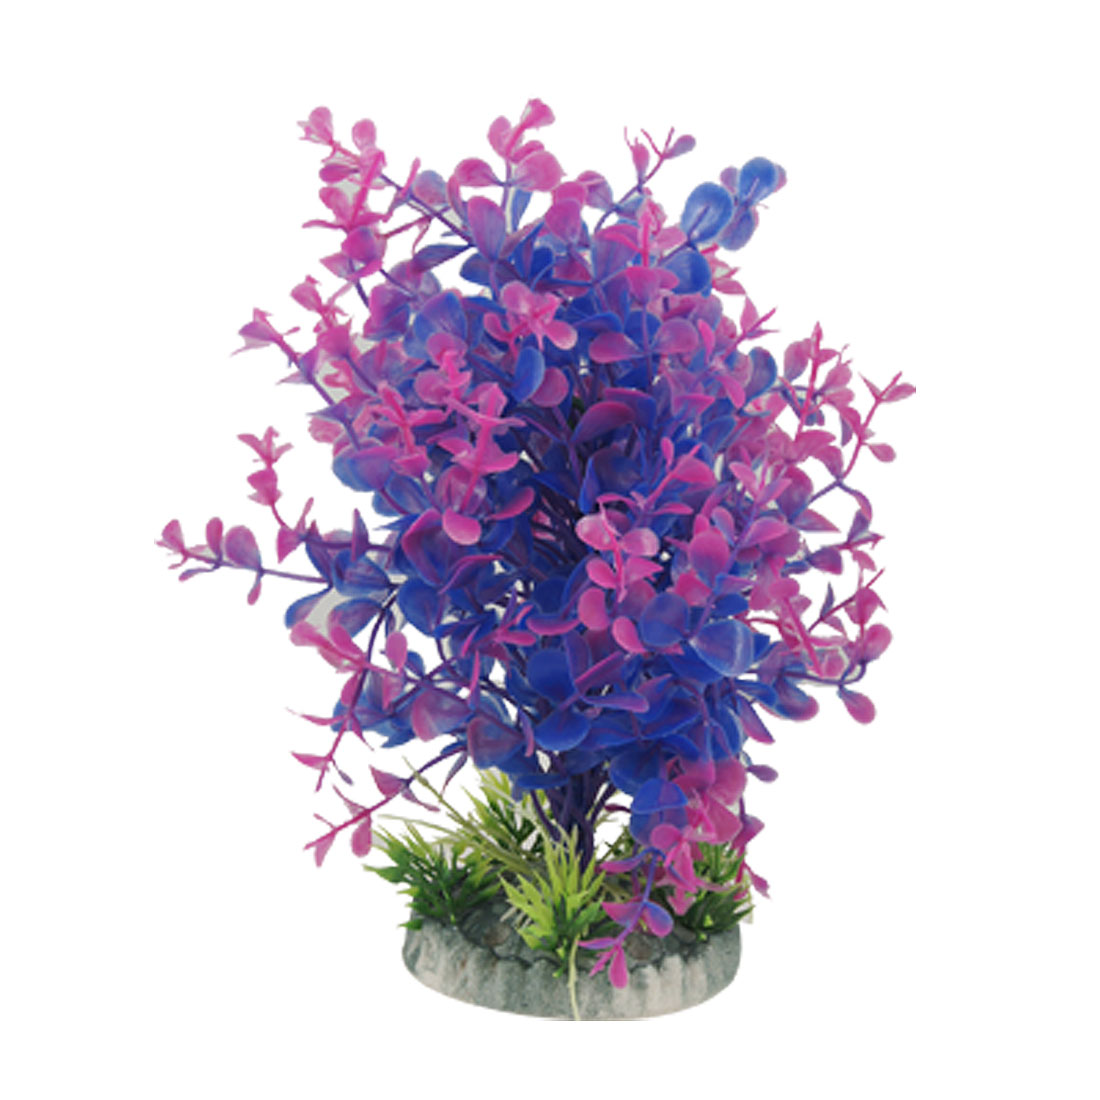 Fish Aquarium Purple Blue Grass Plant Decor w Base